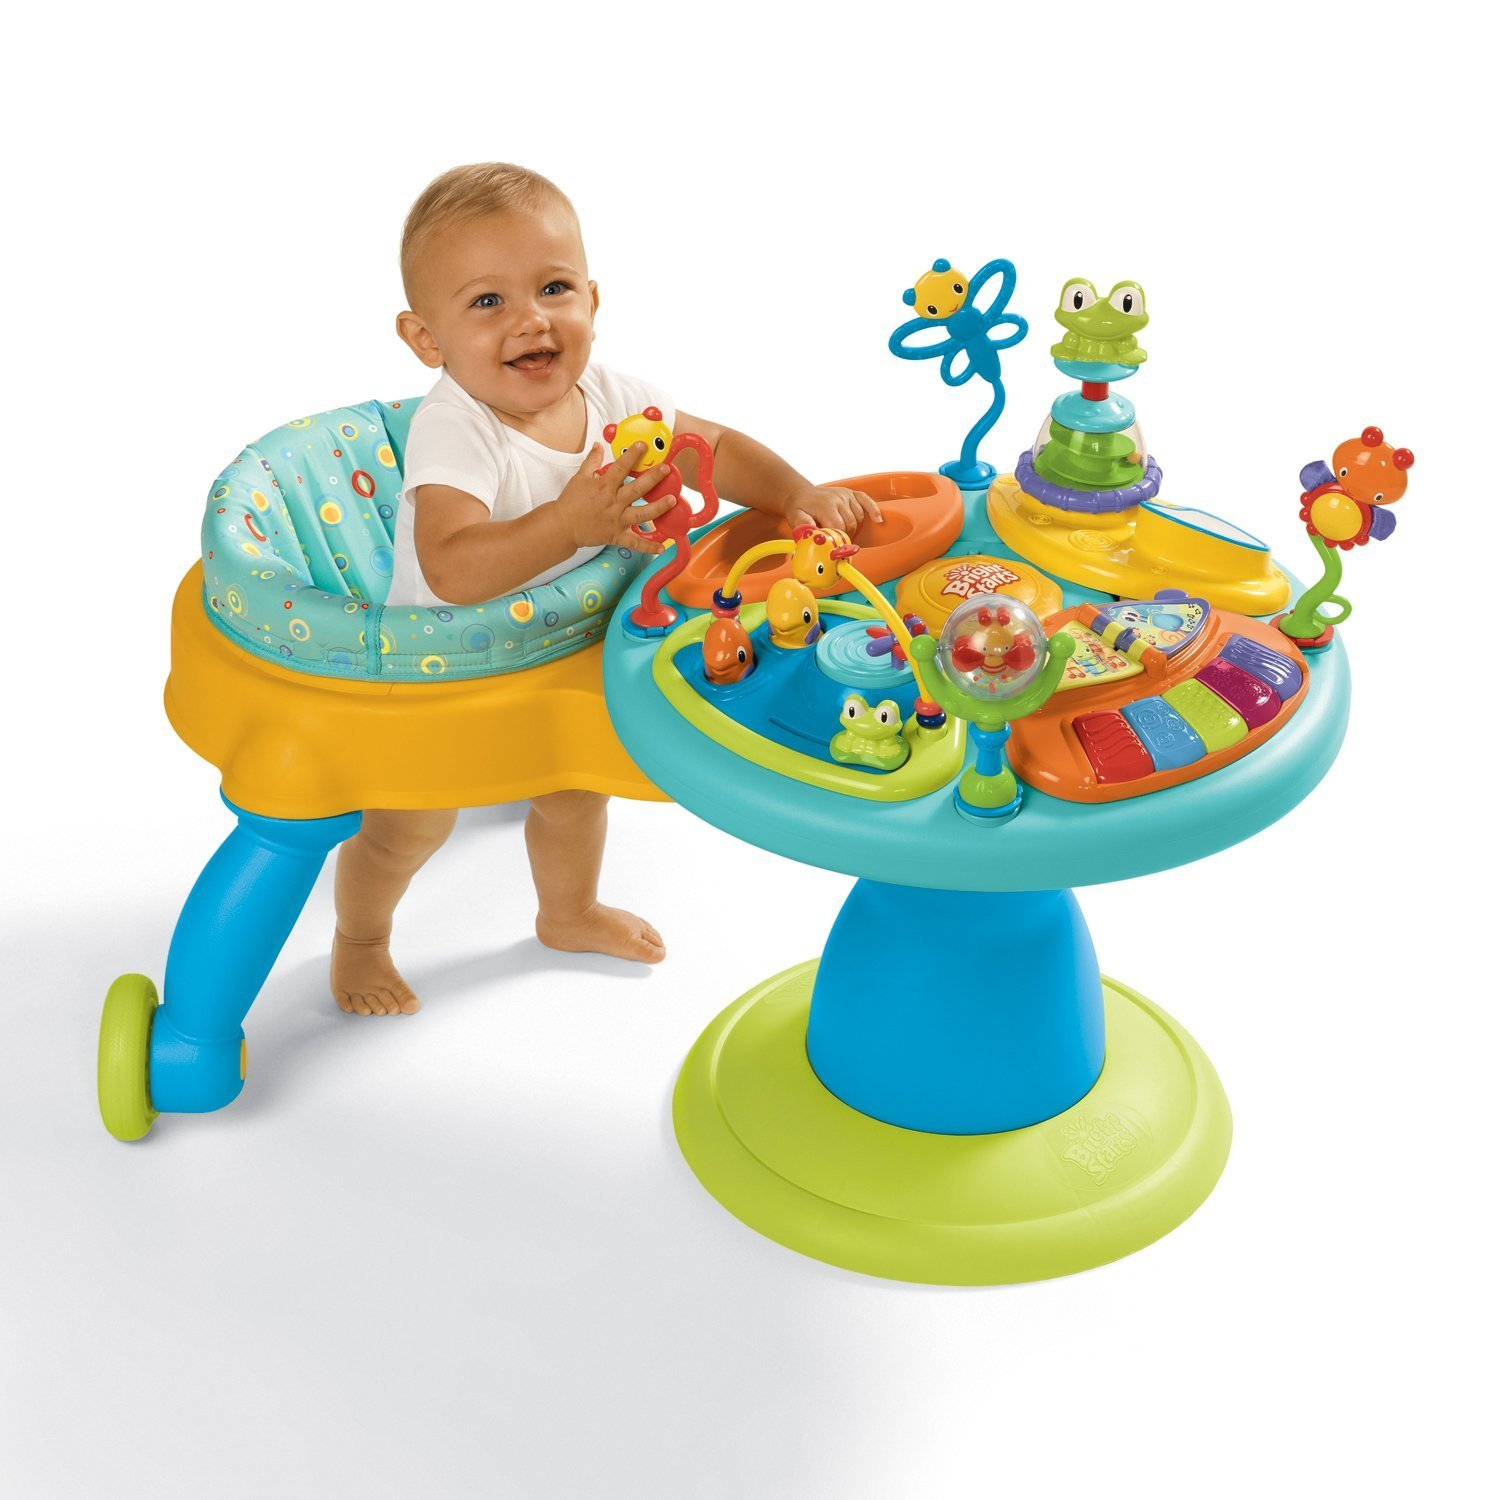 Bright Starts Baby Multifunctional Game Table Toy Music